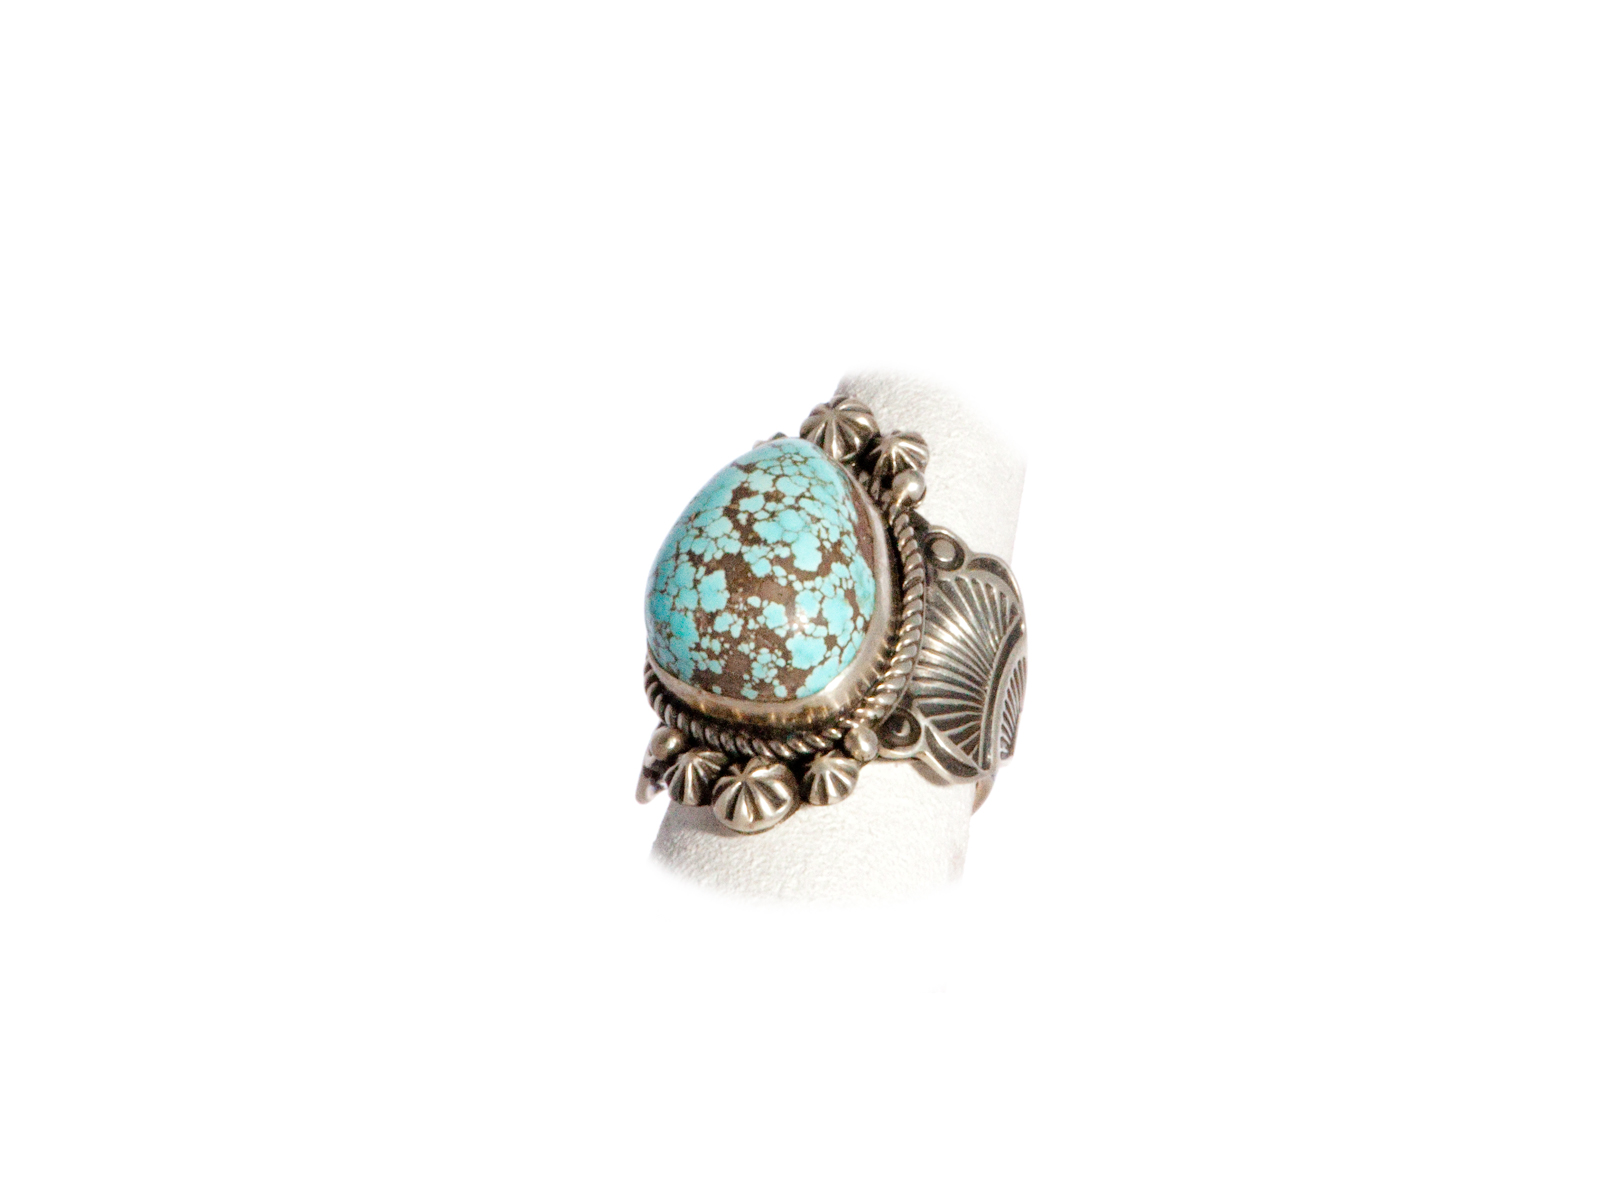 Number 8 Turquoise Stone in Sterling Silver Vintage Ring